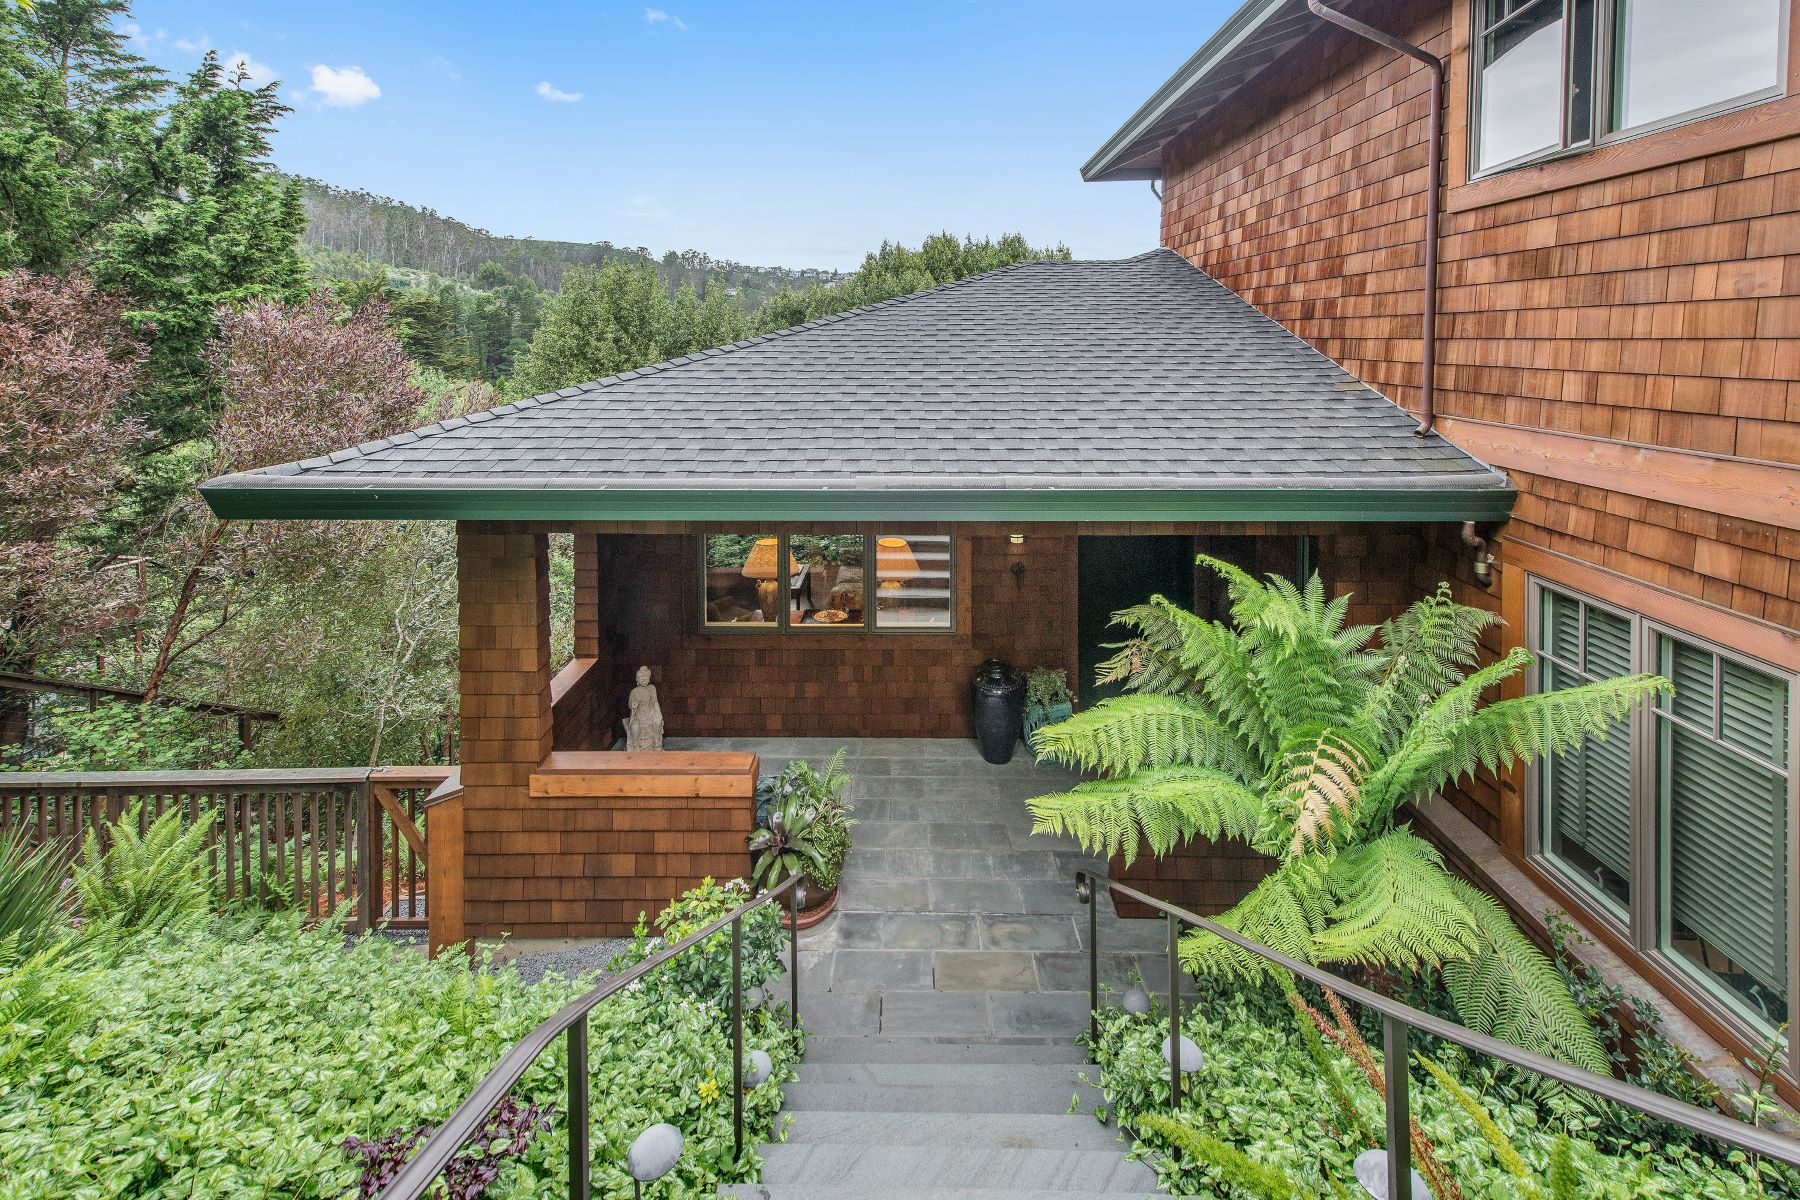 獨棟家庭住宅 為 出售 在 Private and Tranquil Contemporary Home 699 Forest Way Mill Valley, 加利福尼亞州, 94941 美國